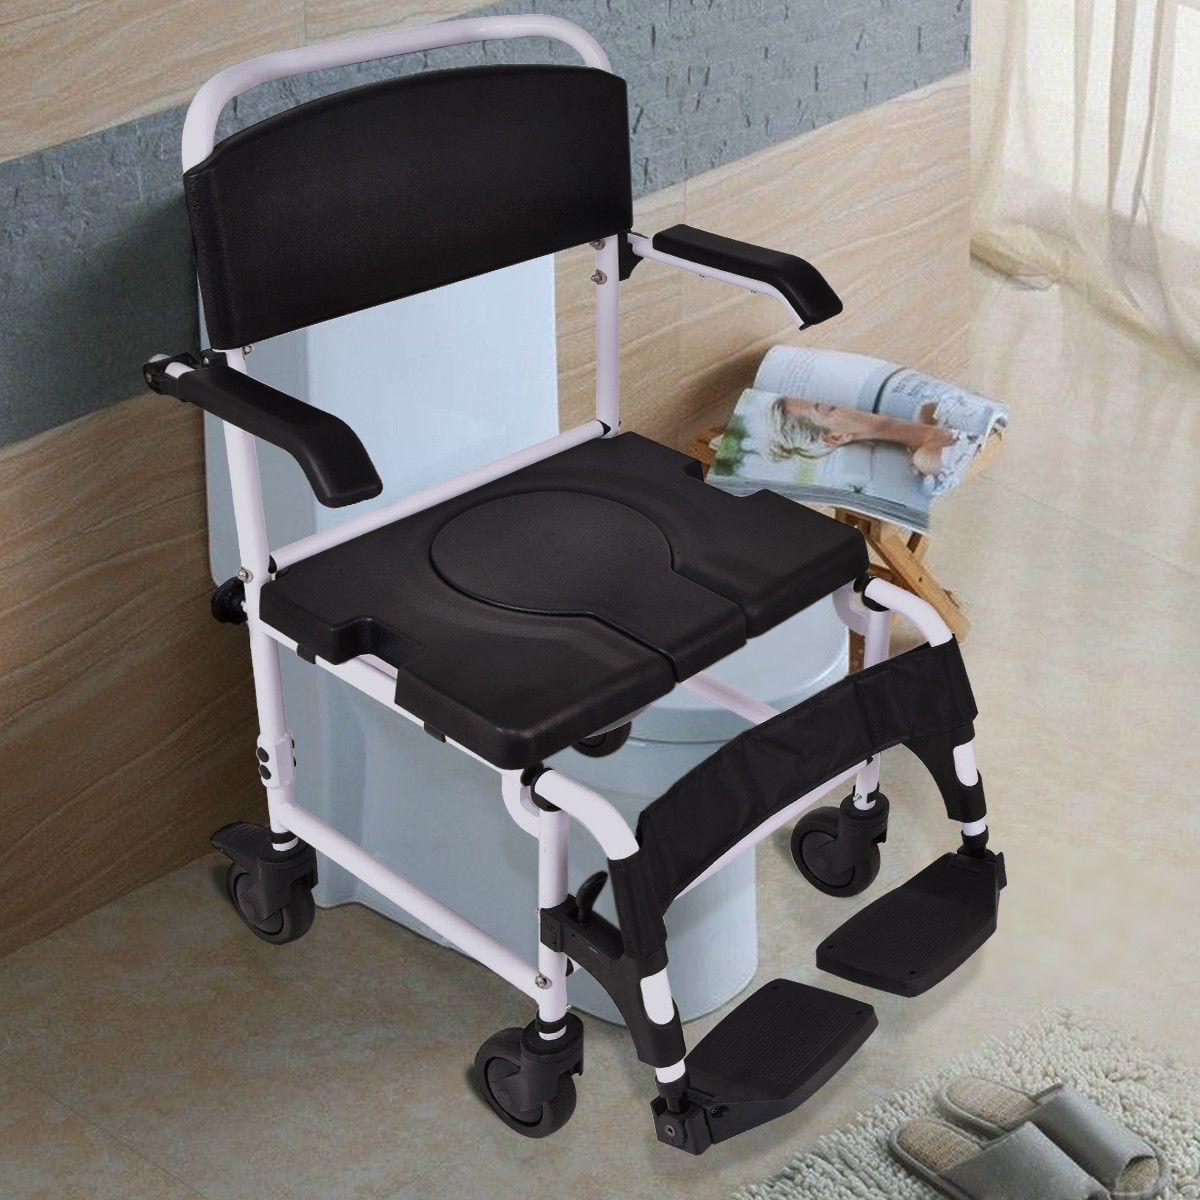 Bathroom Shower Toilet Commode Wheelchair W Drop Arms Toilet Commode Commode Chair Comfy Accent Chairs